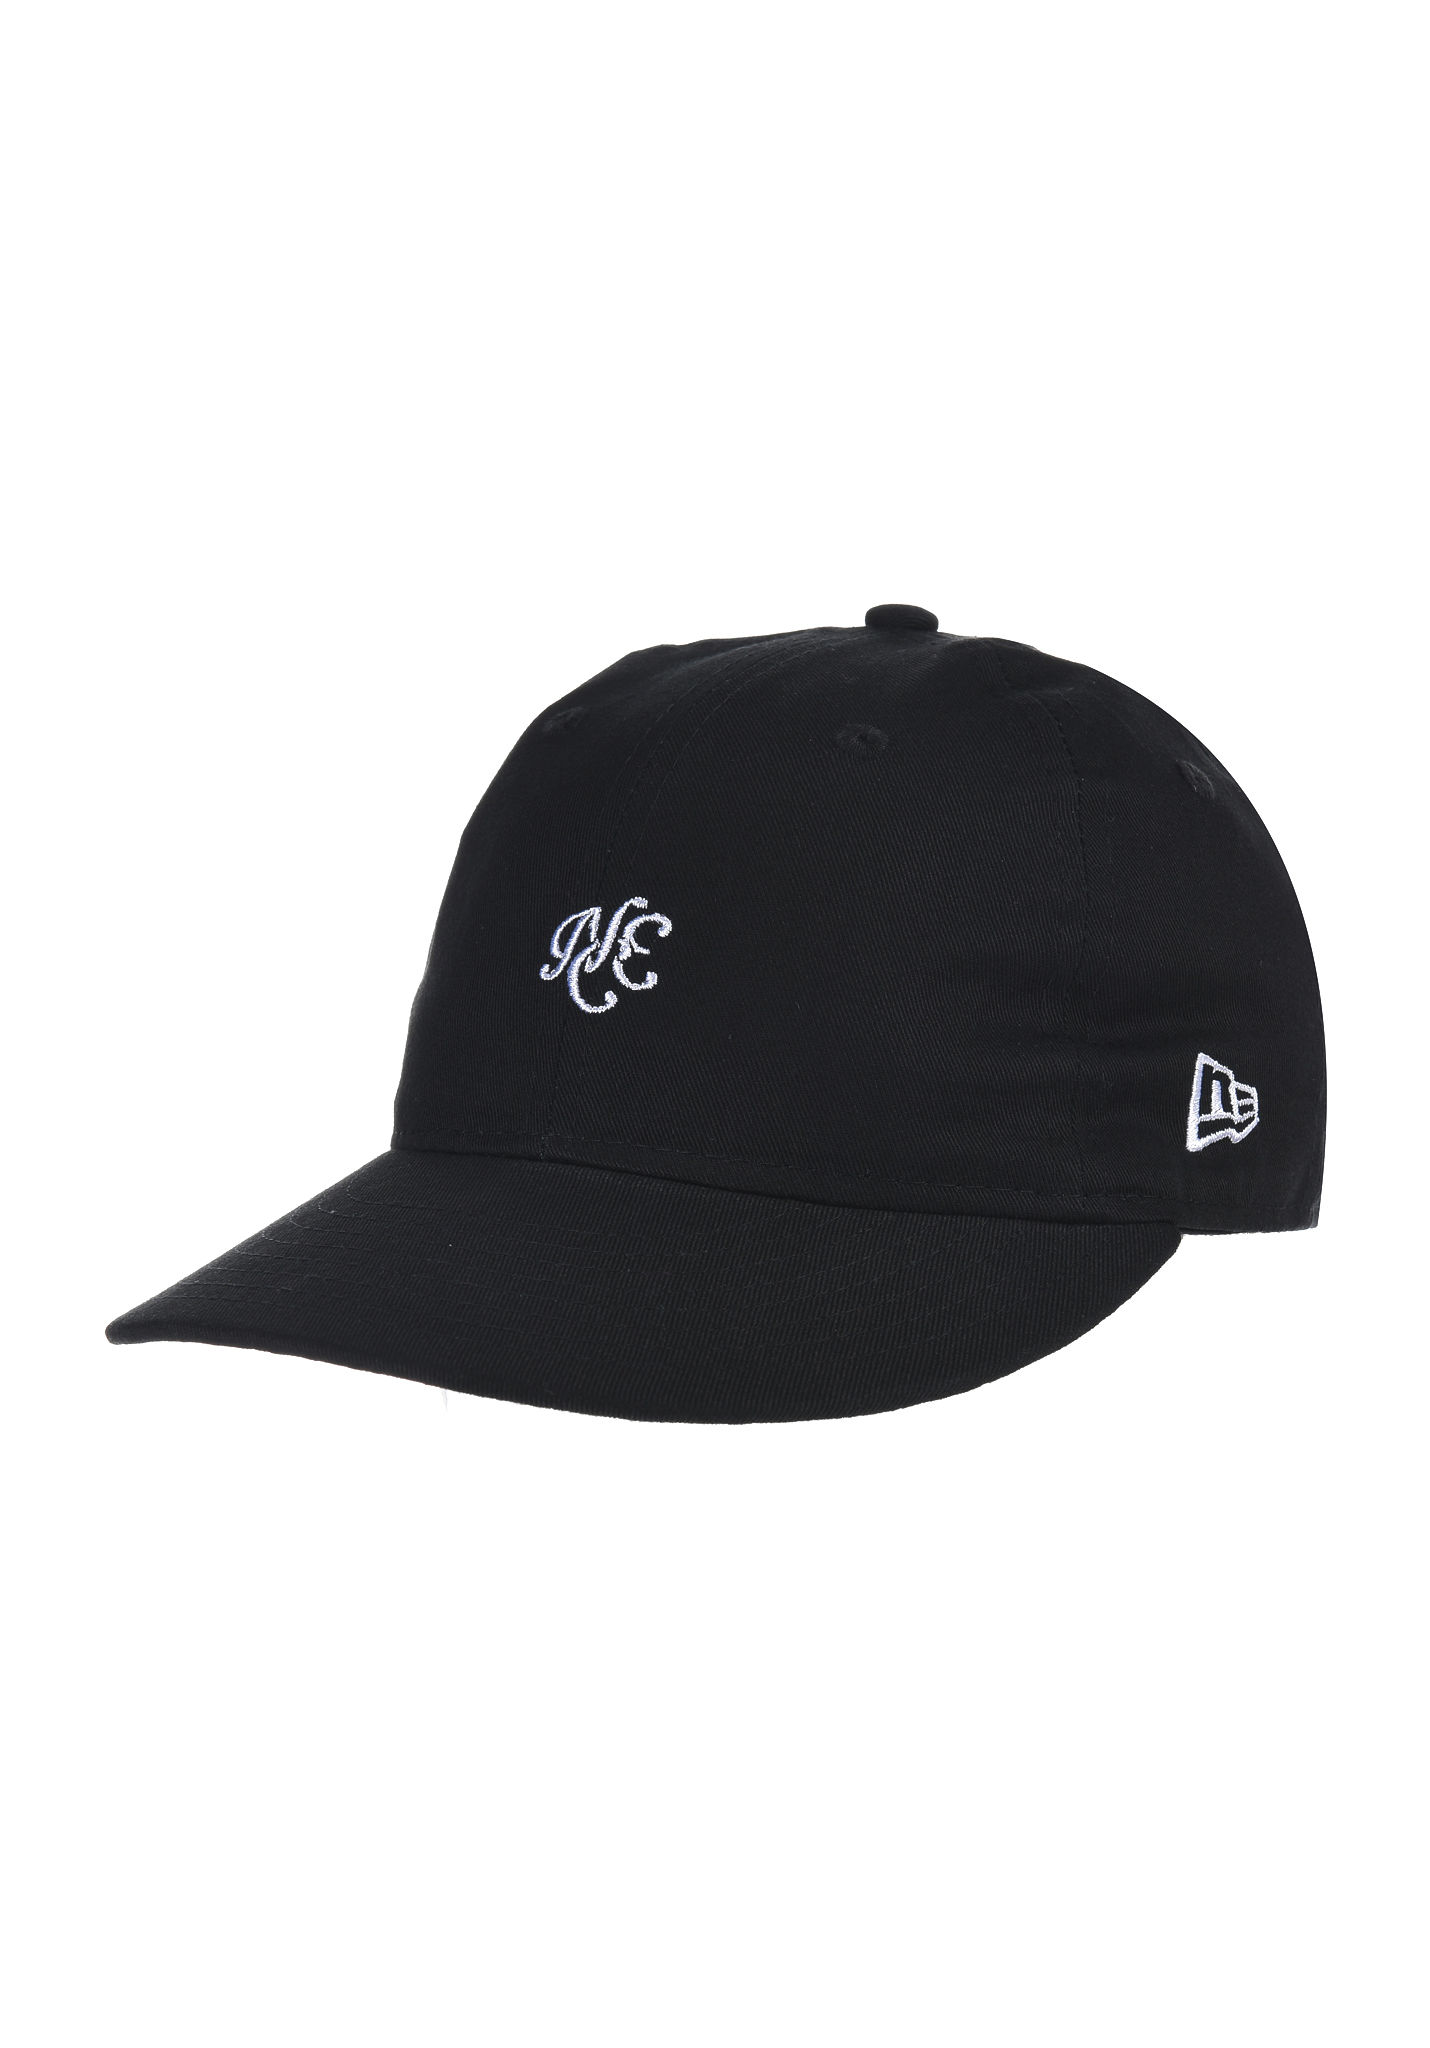 NEW Era Unstructured 9Fifty Strapback - Snapback Cap - Black - Planet Sports 427da9fb14d